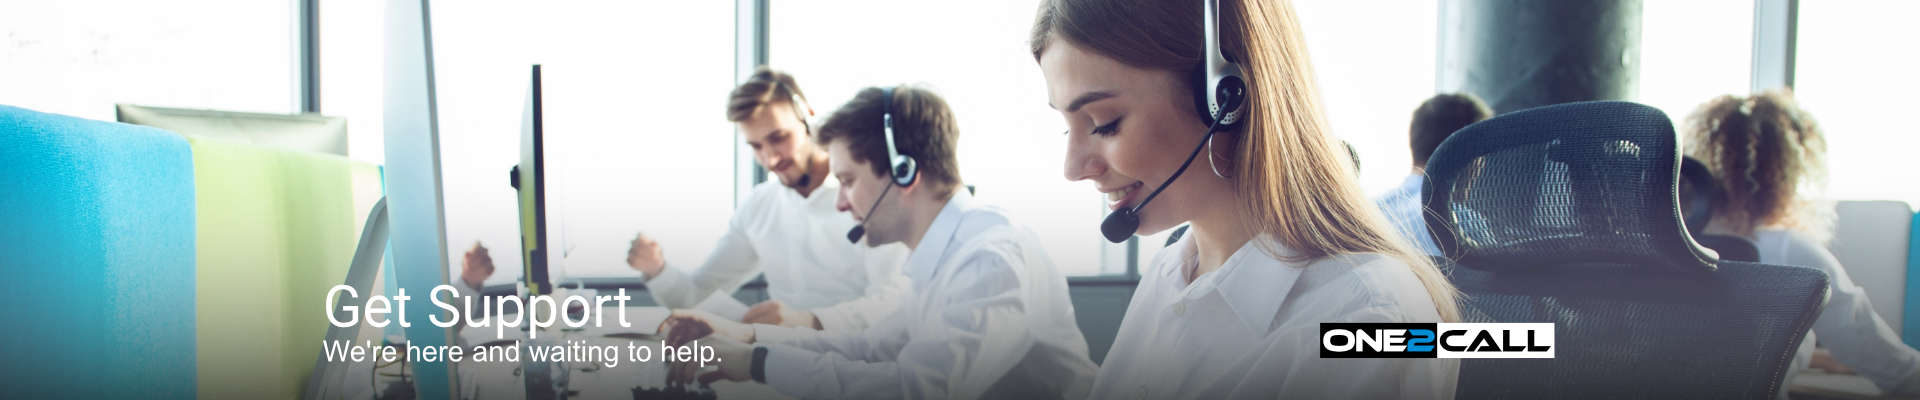 Get Support - We're here ad waiting to help.